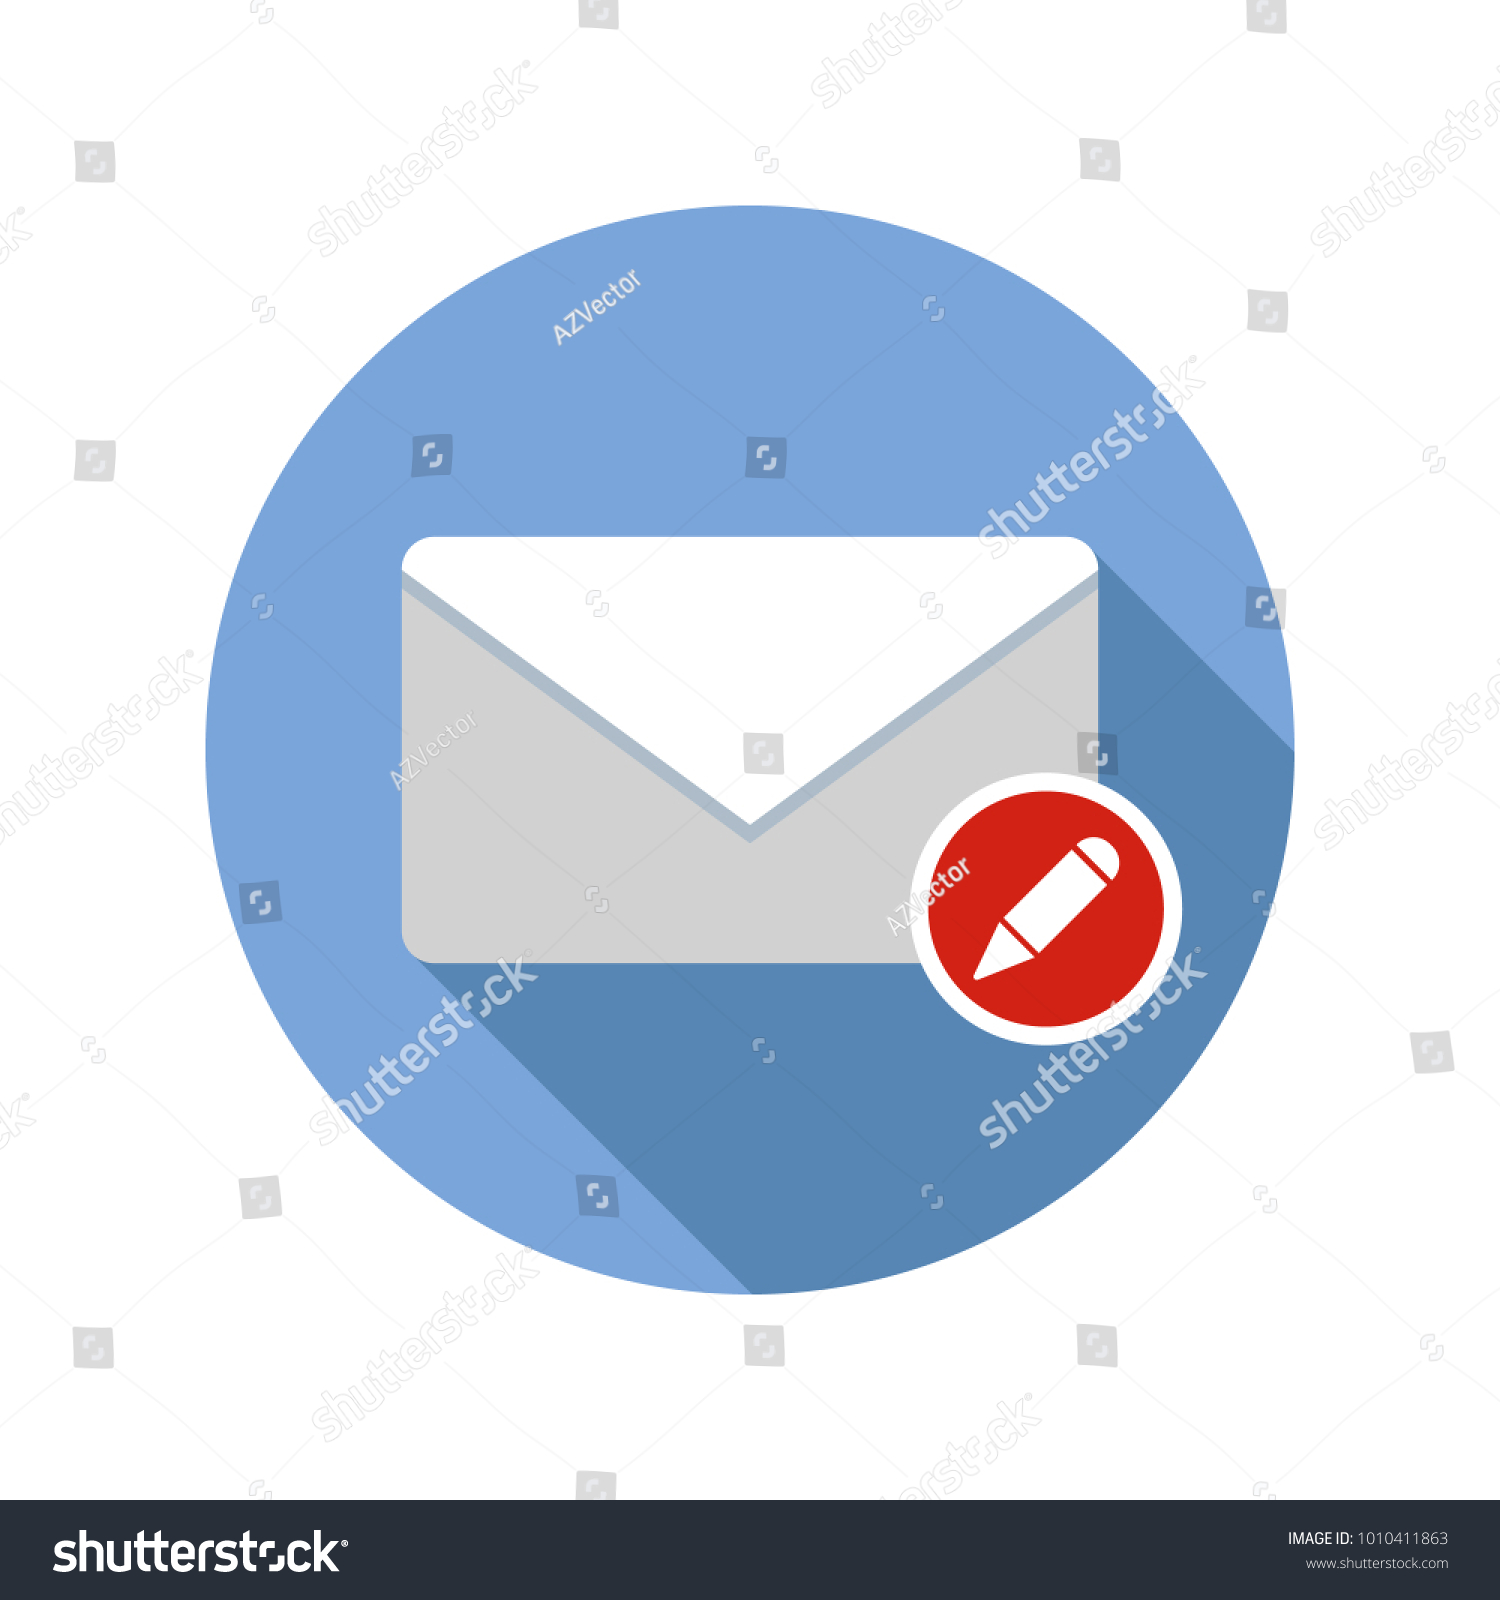 Write mail icon email icon long stock vector hd royalty free write mail icon email icon with long shadow vector flat illustration altavistaventures Choice Image